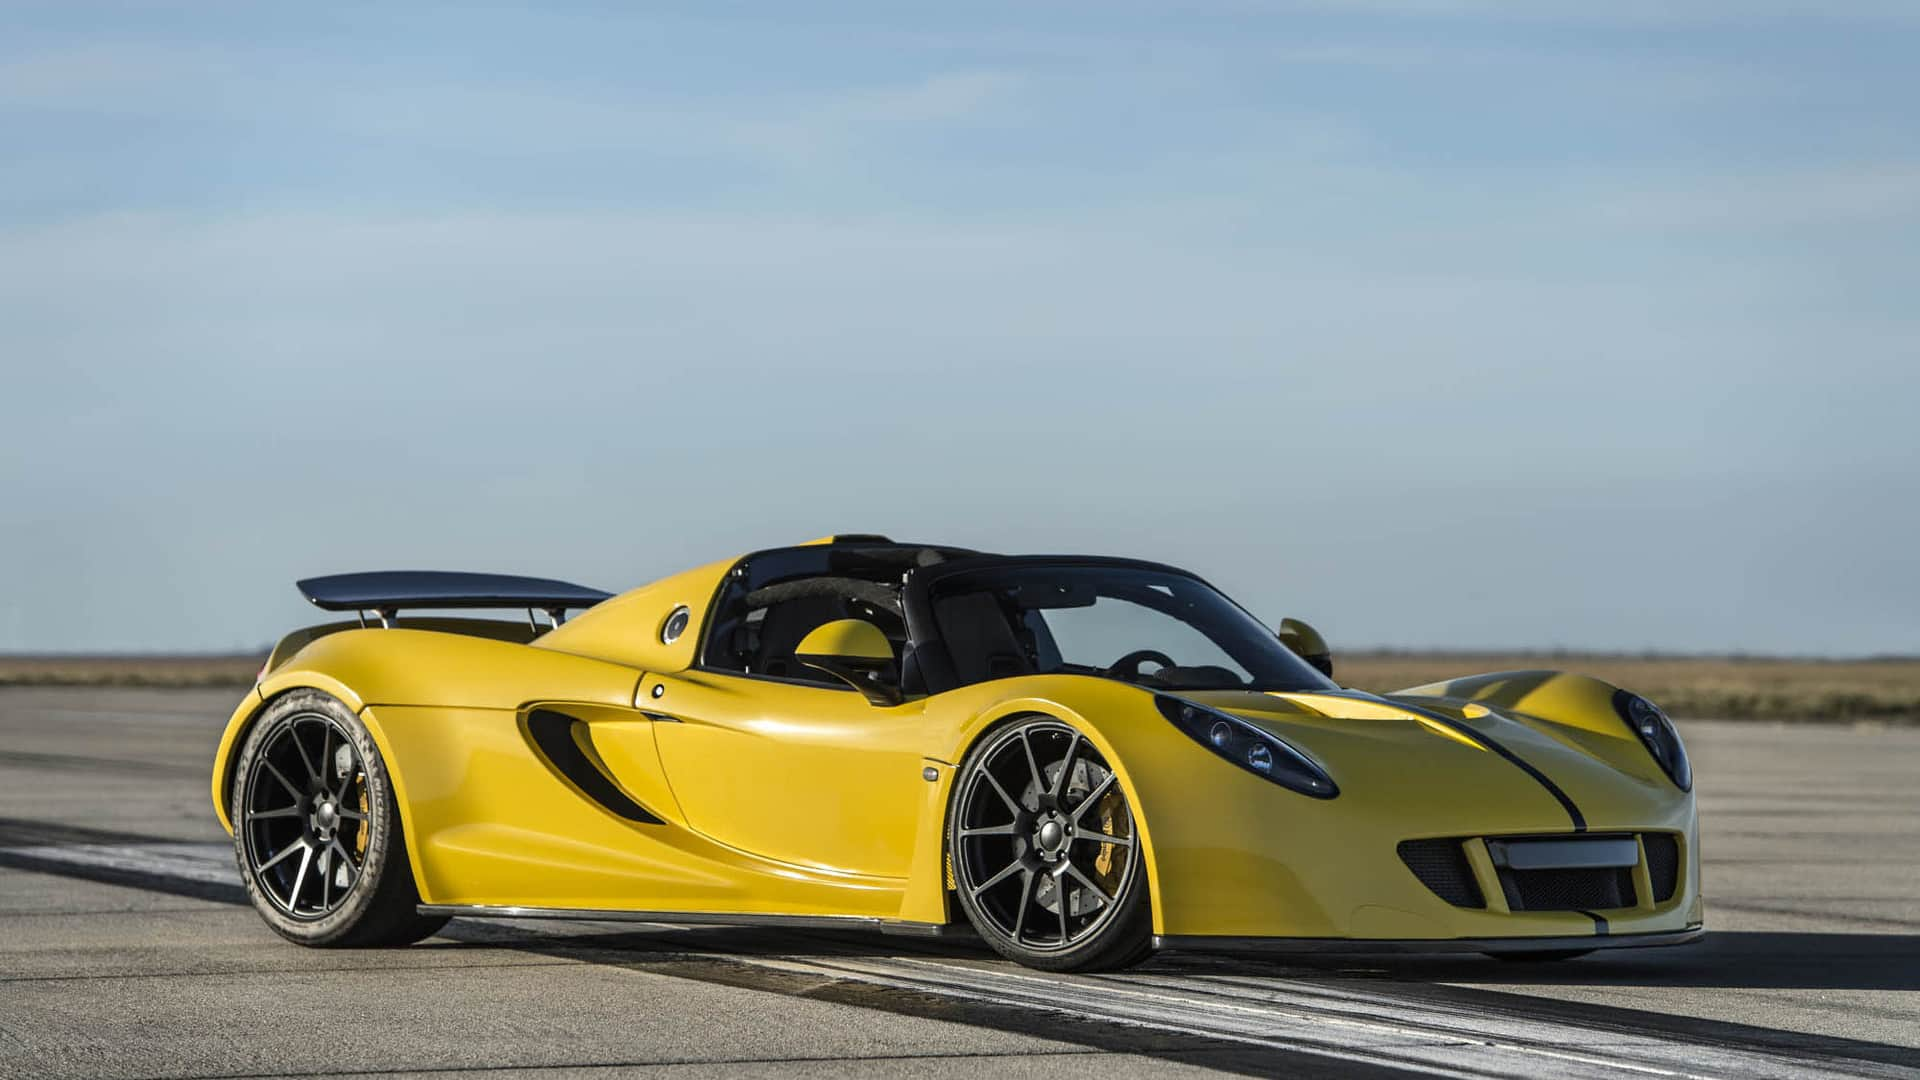 The World S Fastest Convertible Is Now The Hennessey Venom Gt Spyder